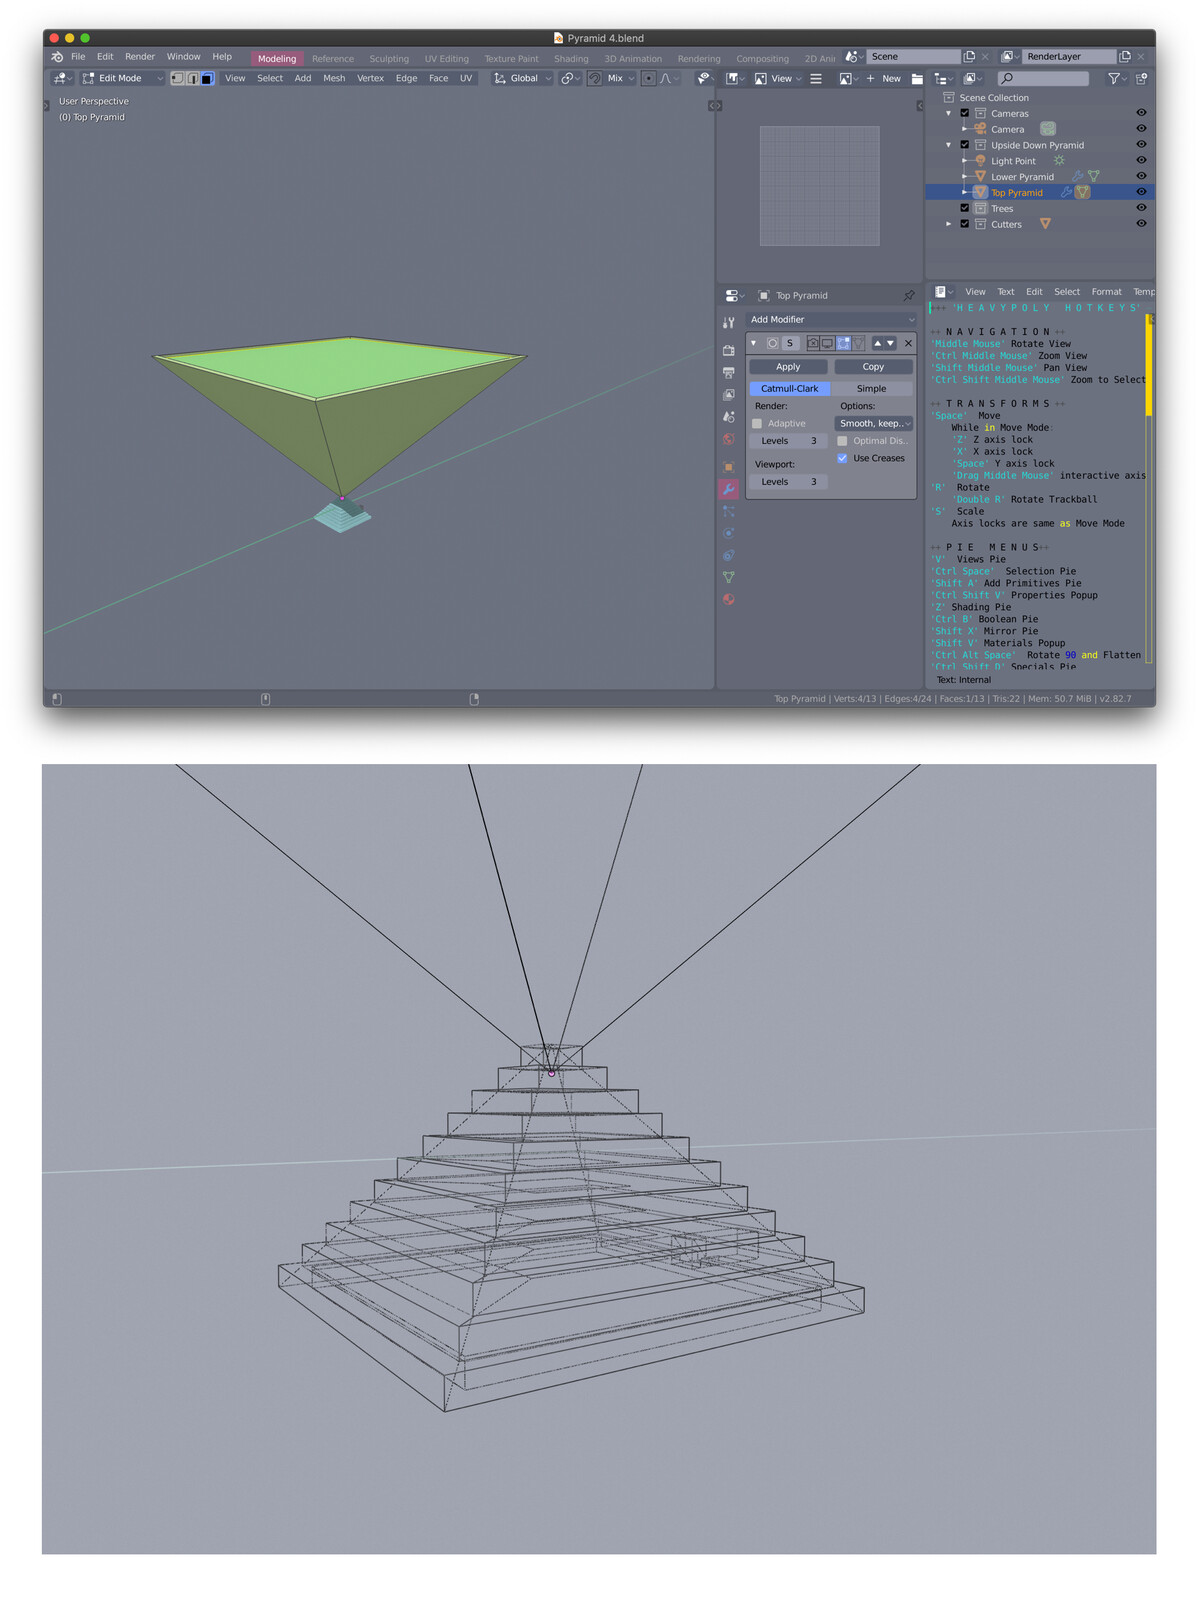 3D modeling of structure. I've never used Blender before but it's pretty easy to learn the basics, and seems like you can do a lot with it!